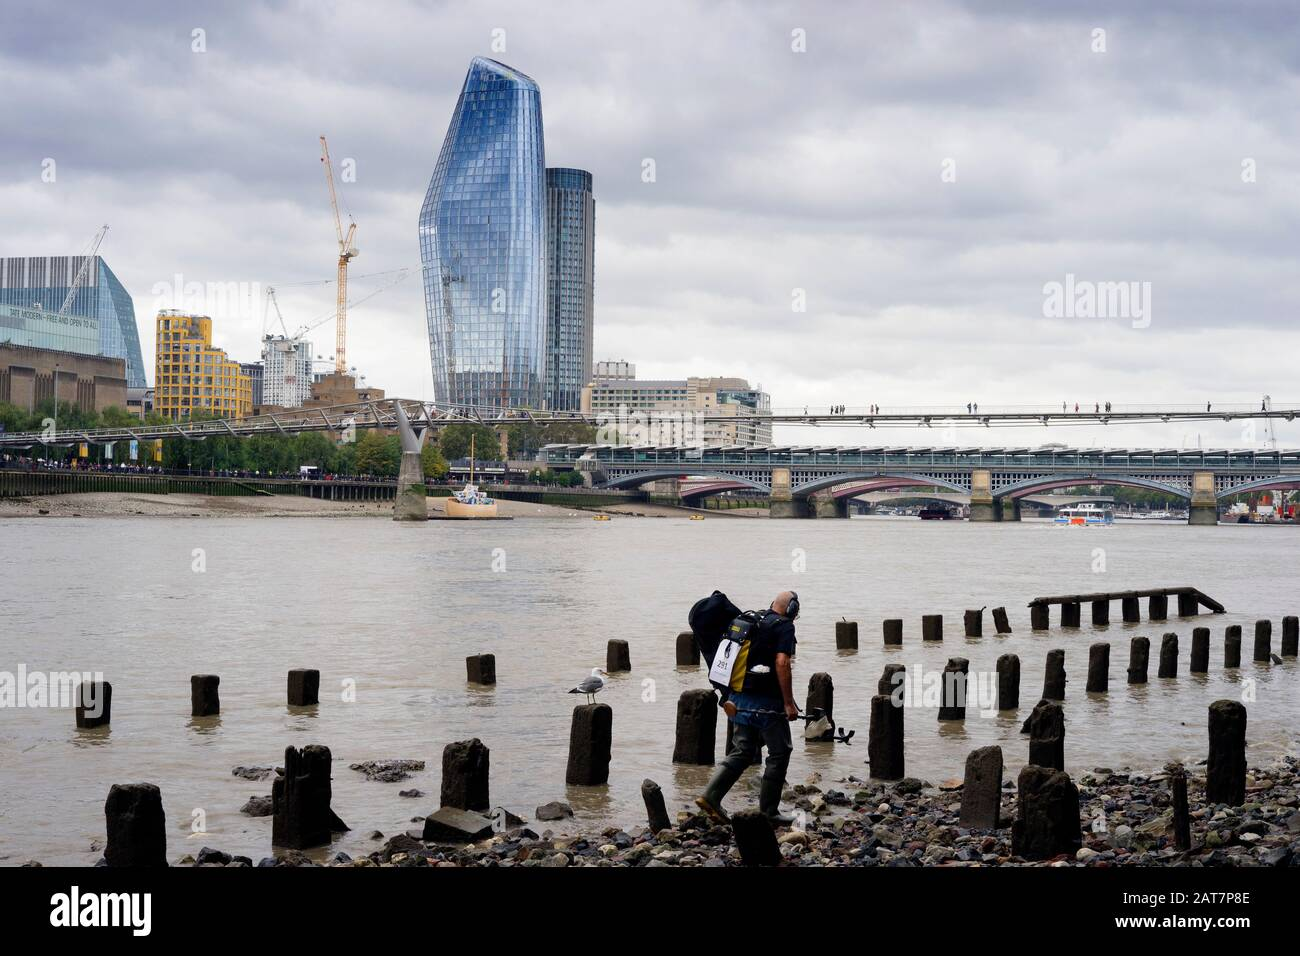 A man with a metal detector works his way along the Thames foreshore looking towards the Walkie Talkie building. With ancient posts exposed, is a popular place for mudlarking and archaeological finds. Stock Photo